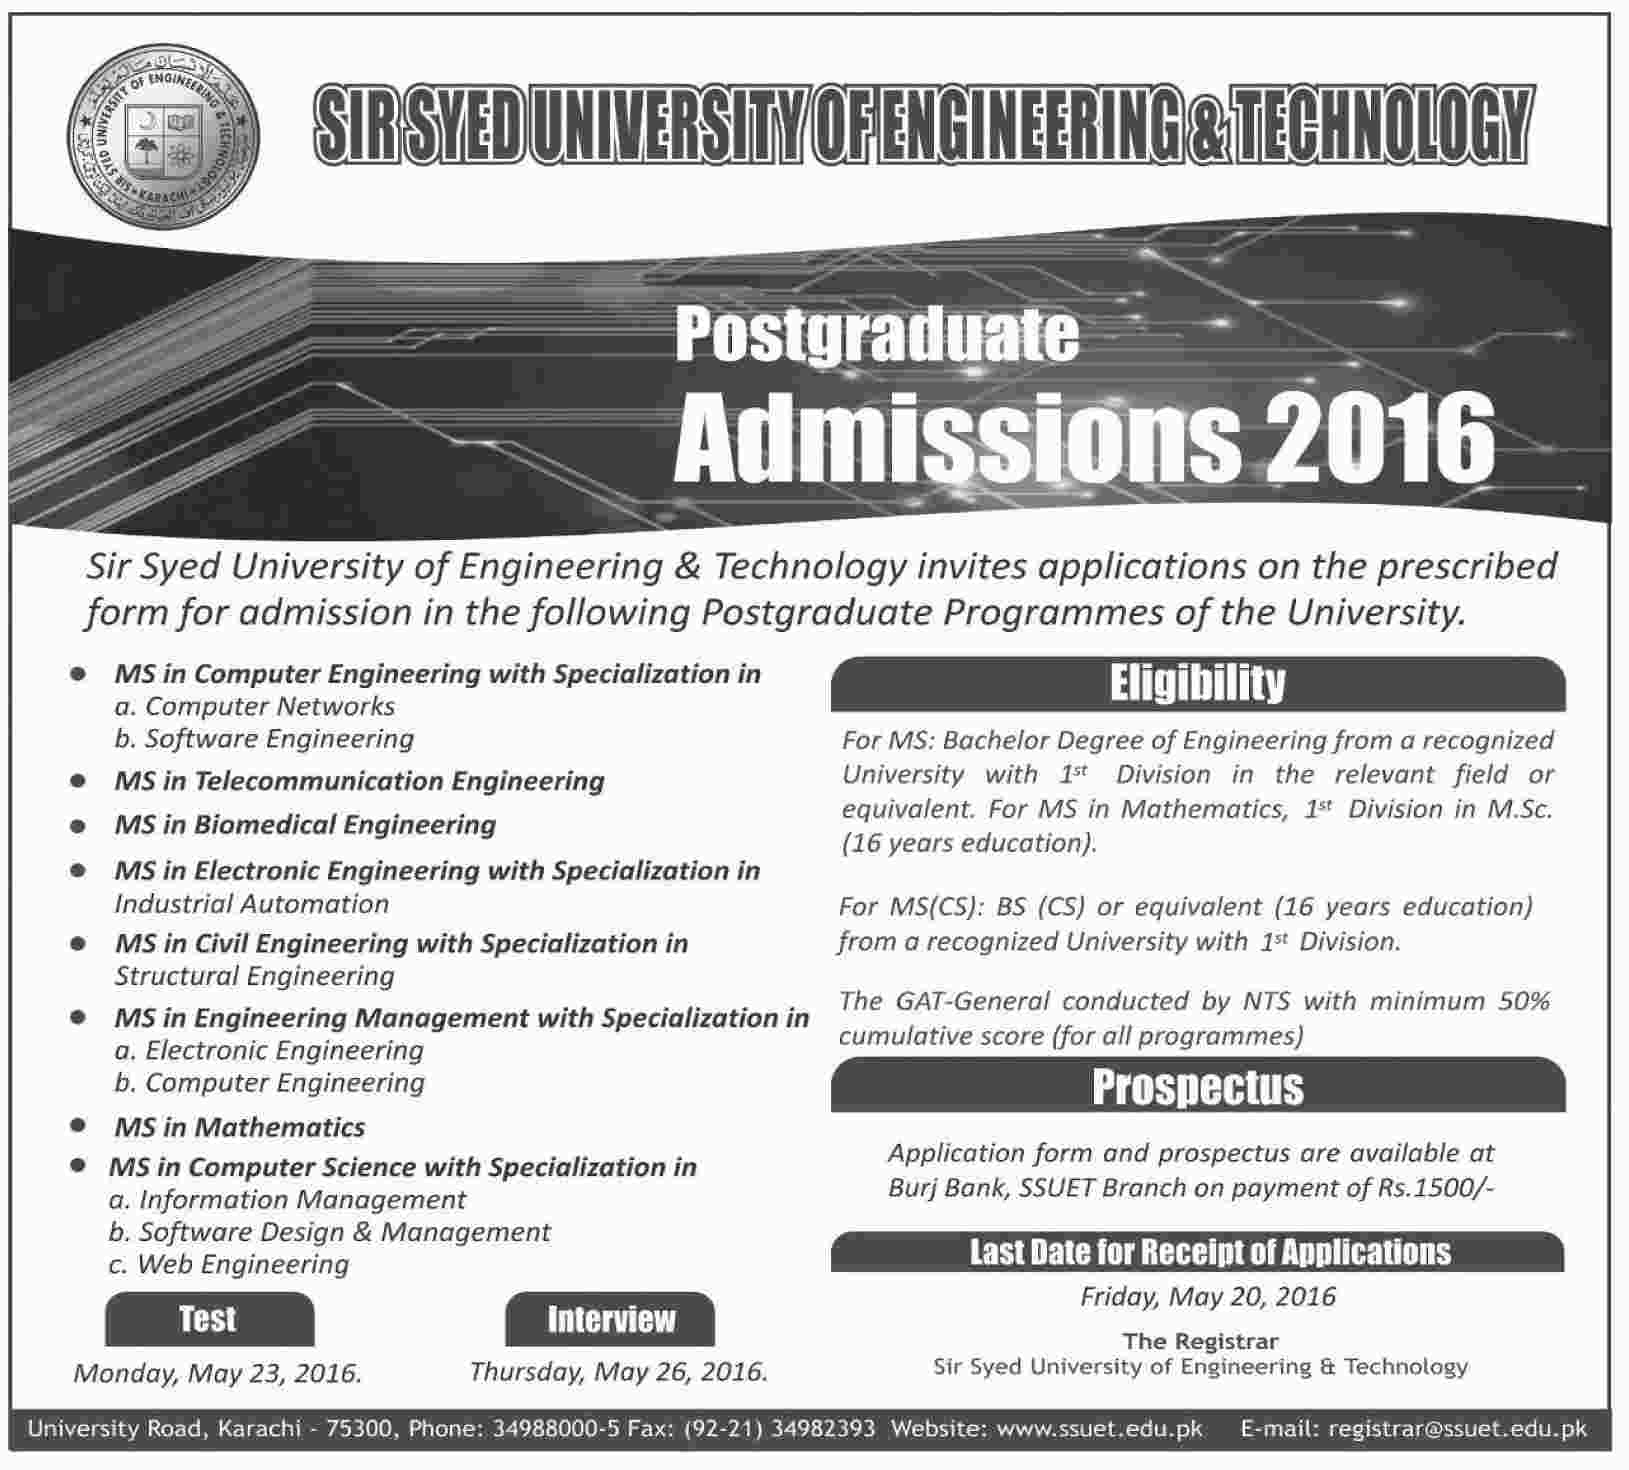 Sir Syed University of Engineering and Technology Post Graduate Admissions 2016